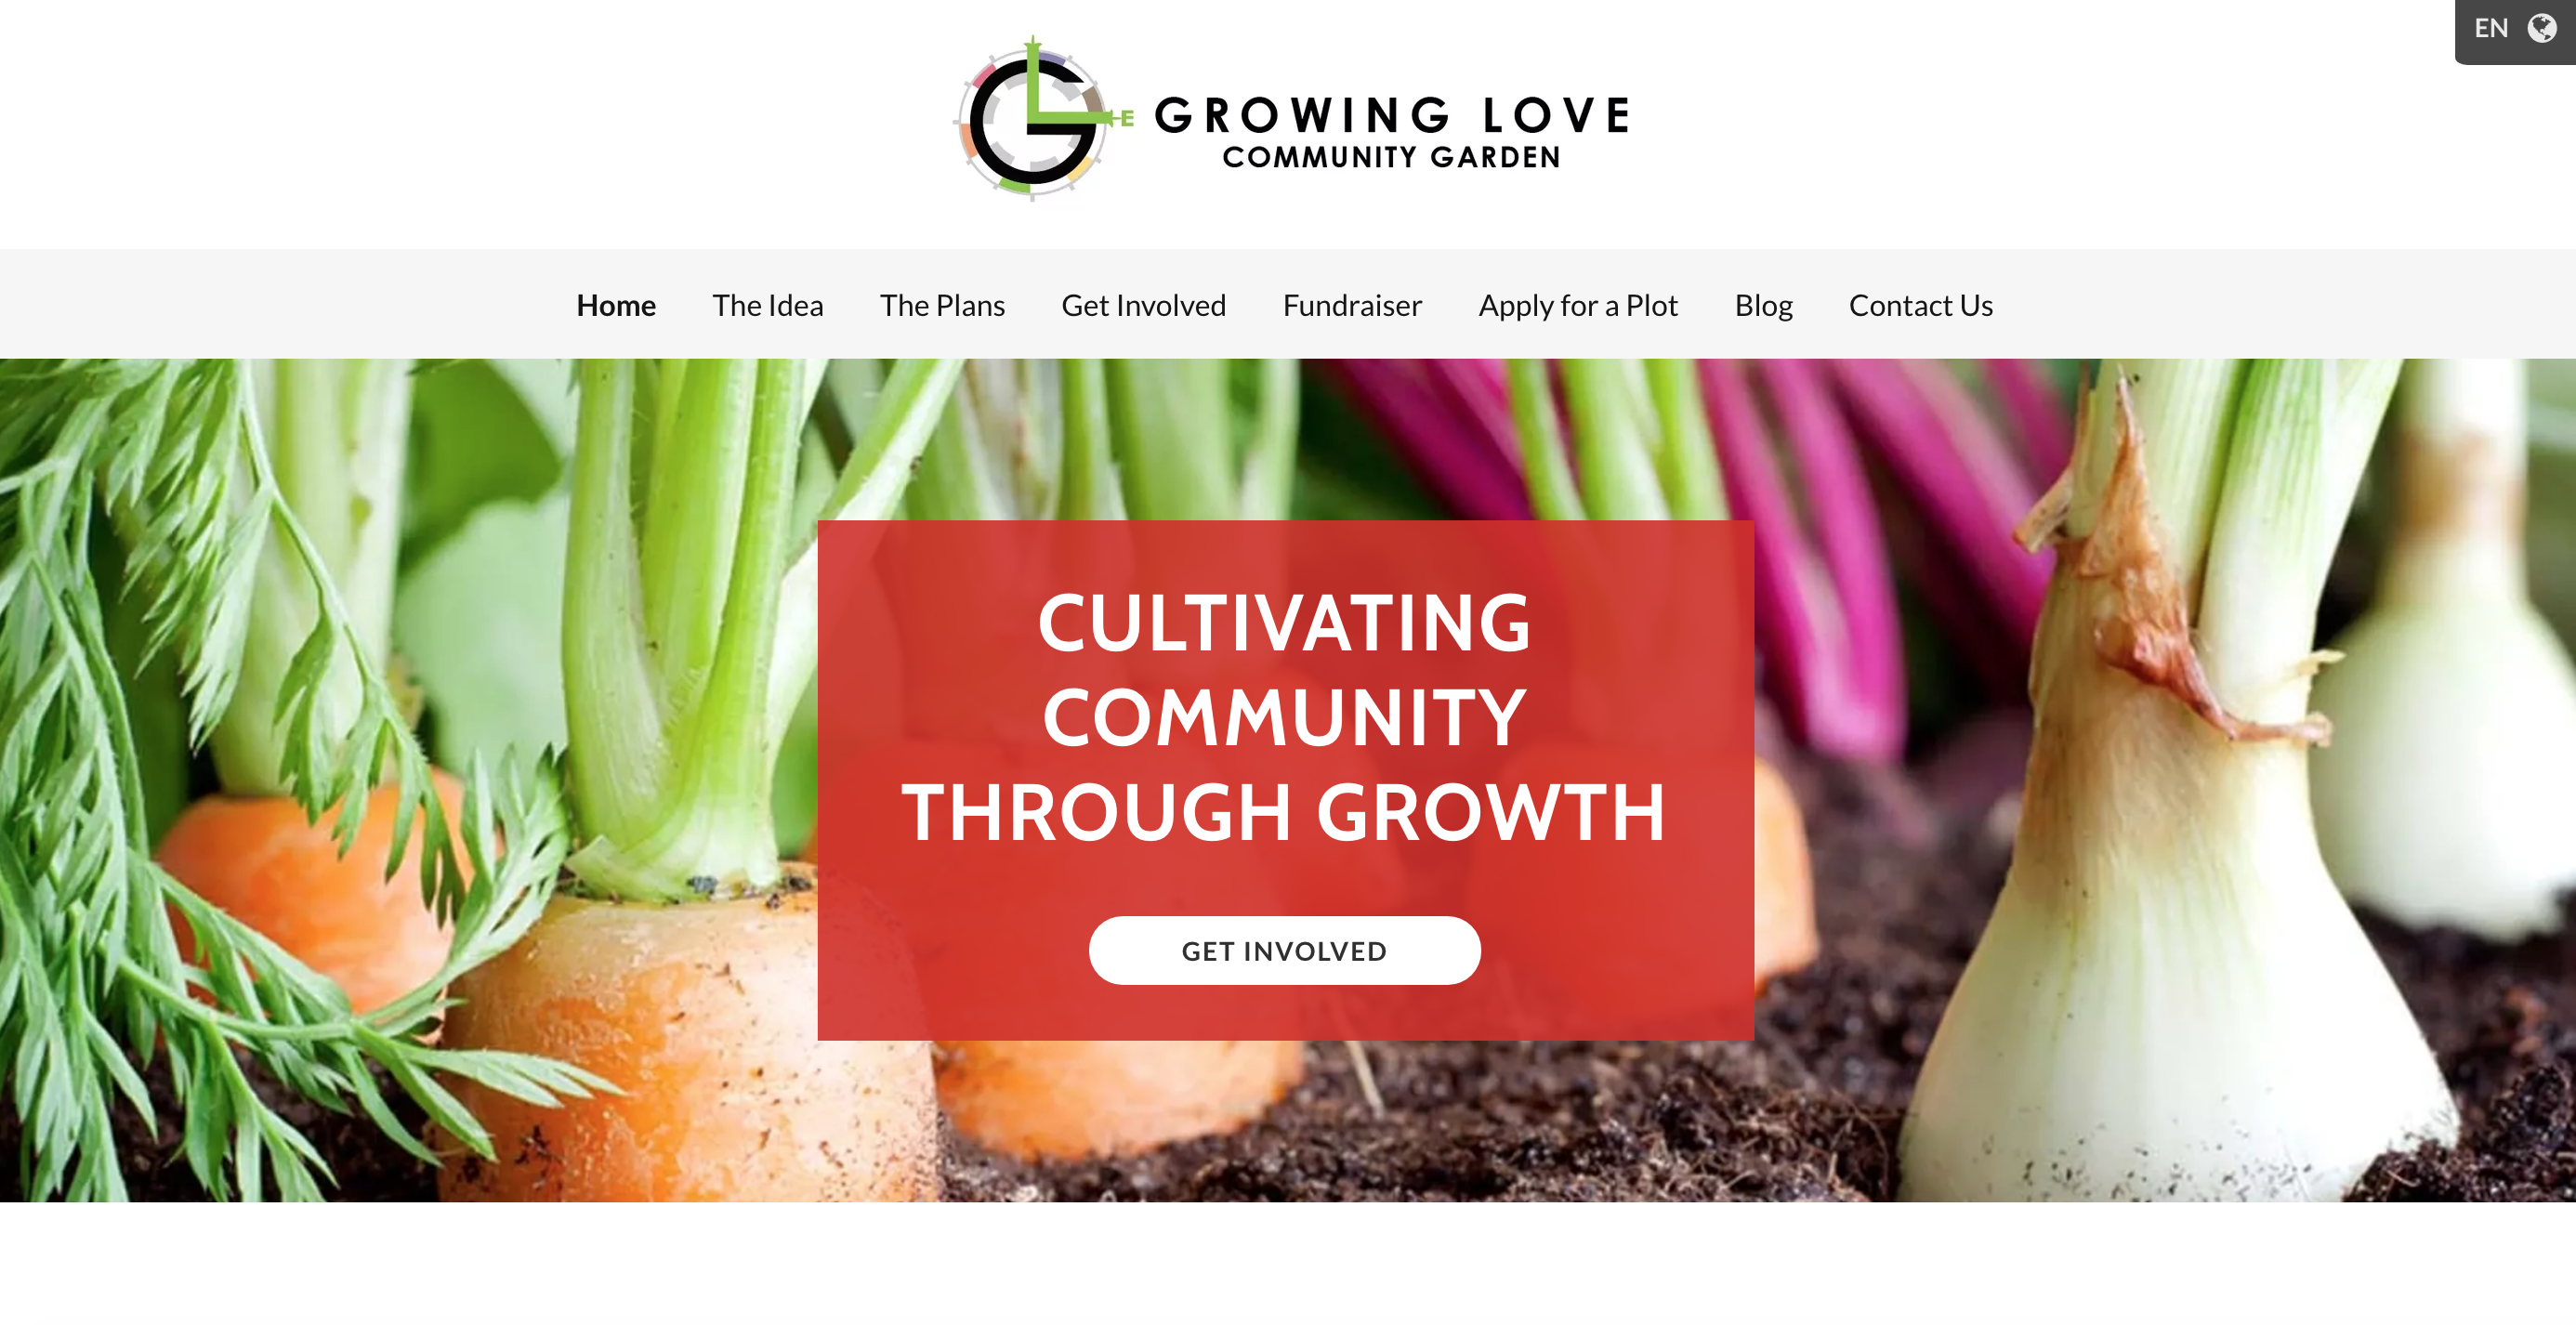 Growing Love Community Garden